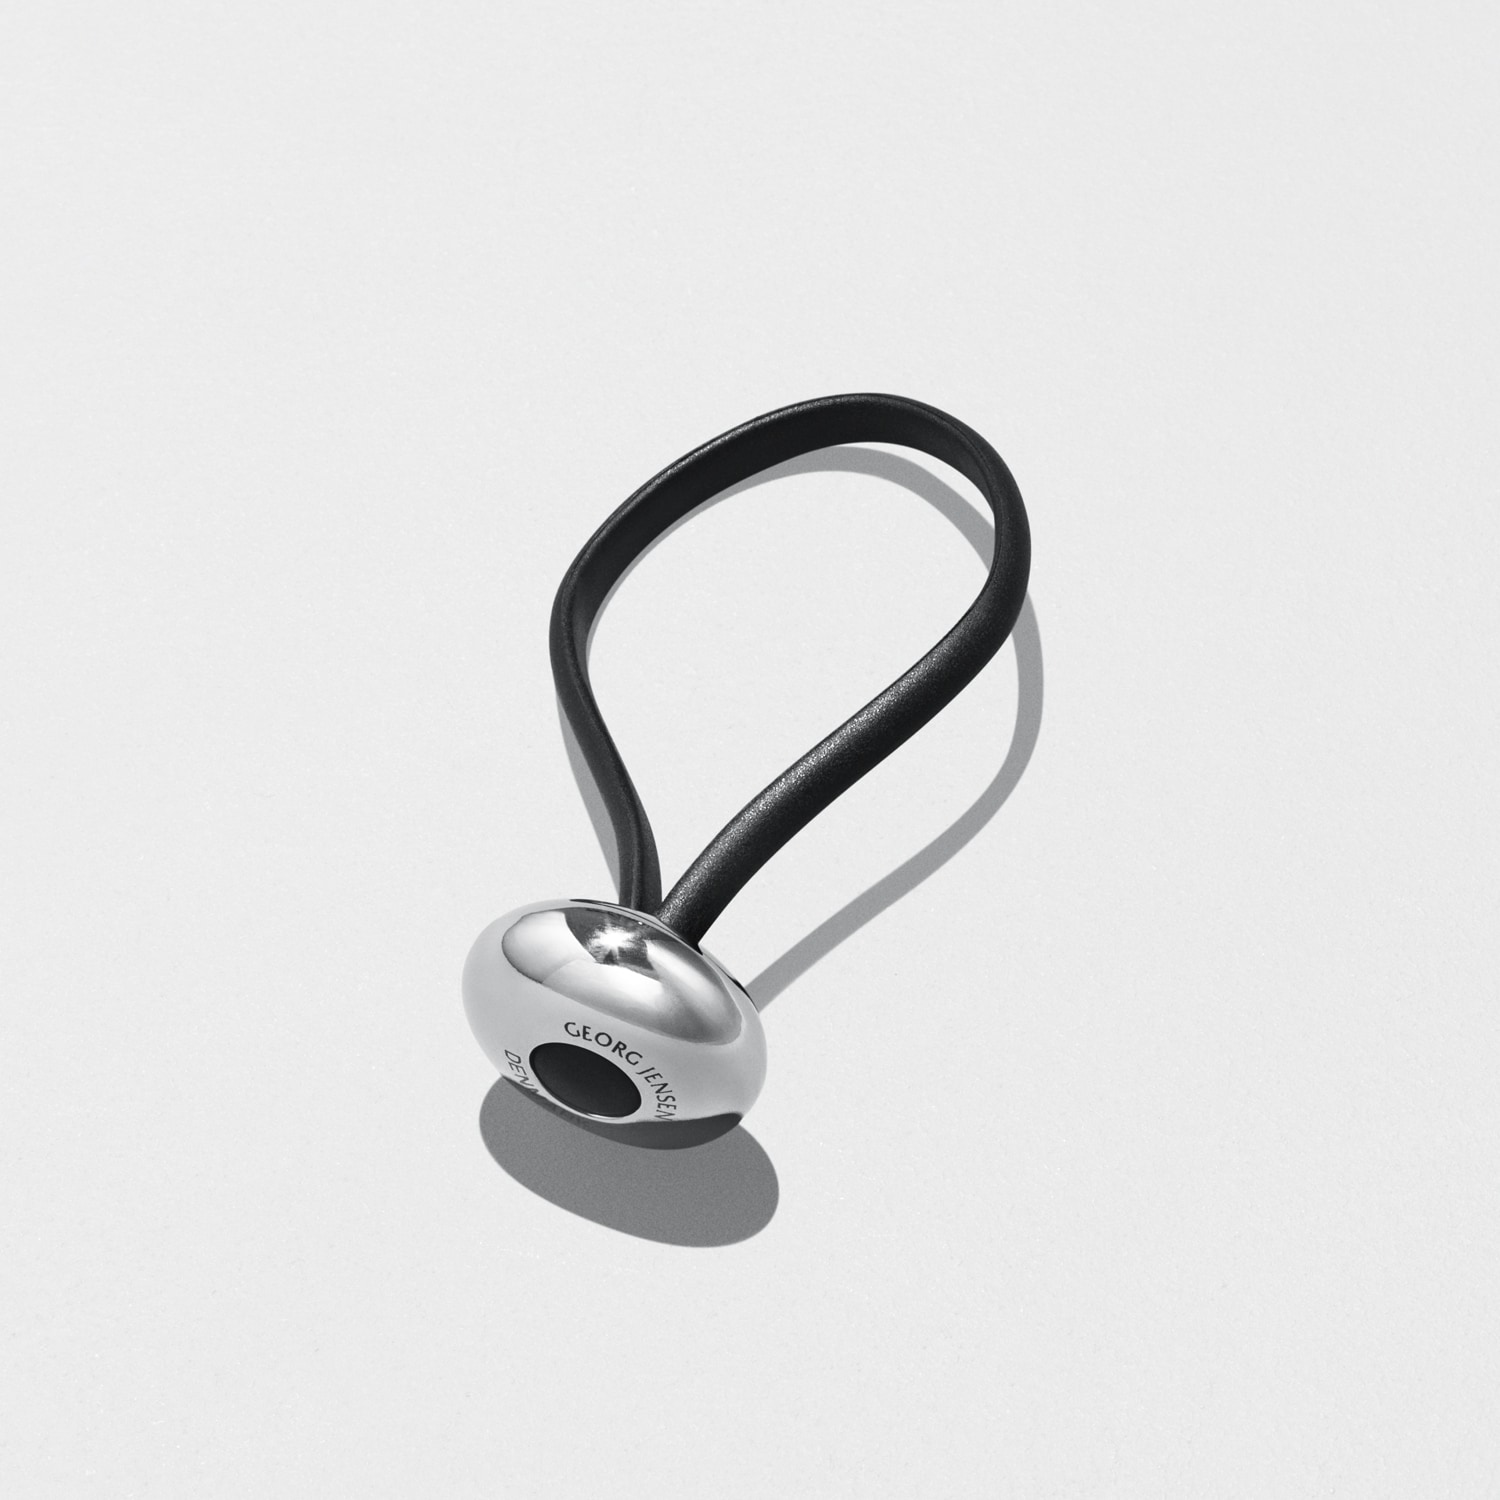 Ellipse Nyckelring - Georg Jensen   RoyalDesign.se 1a463ec87c3a5